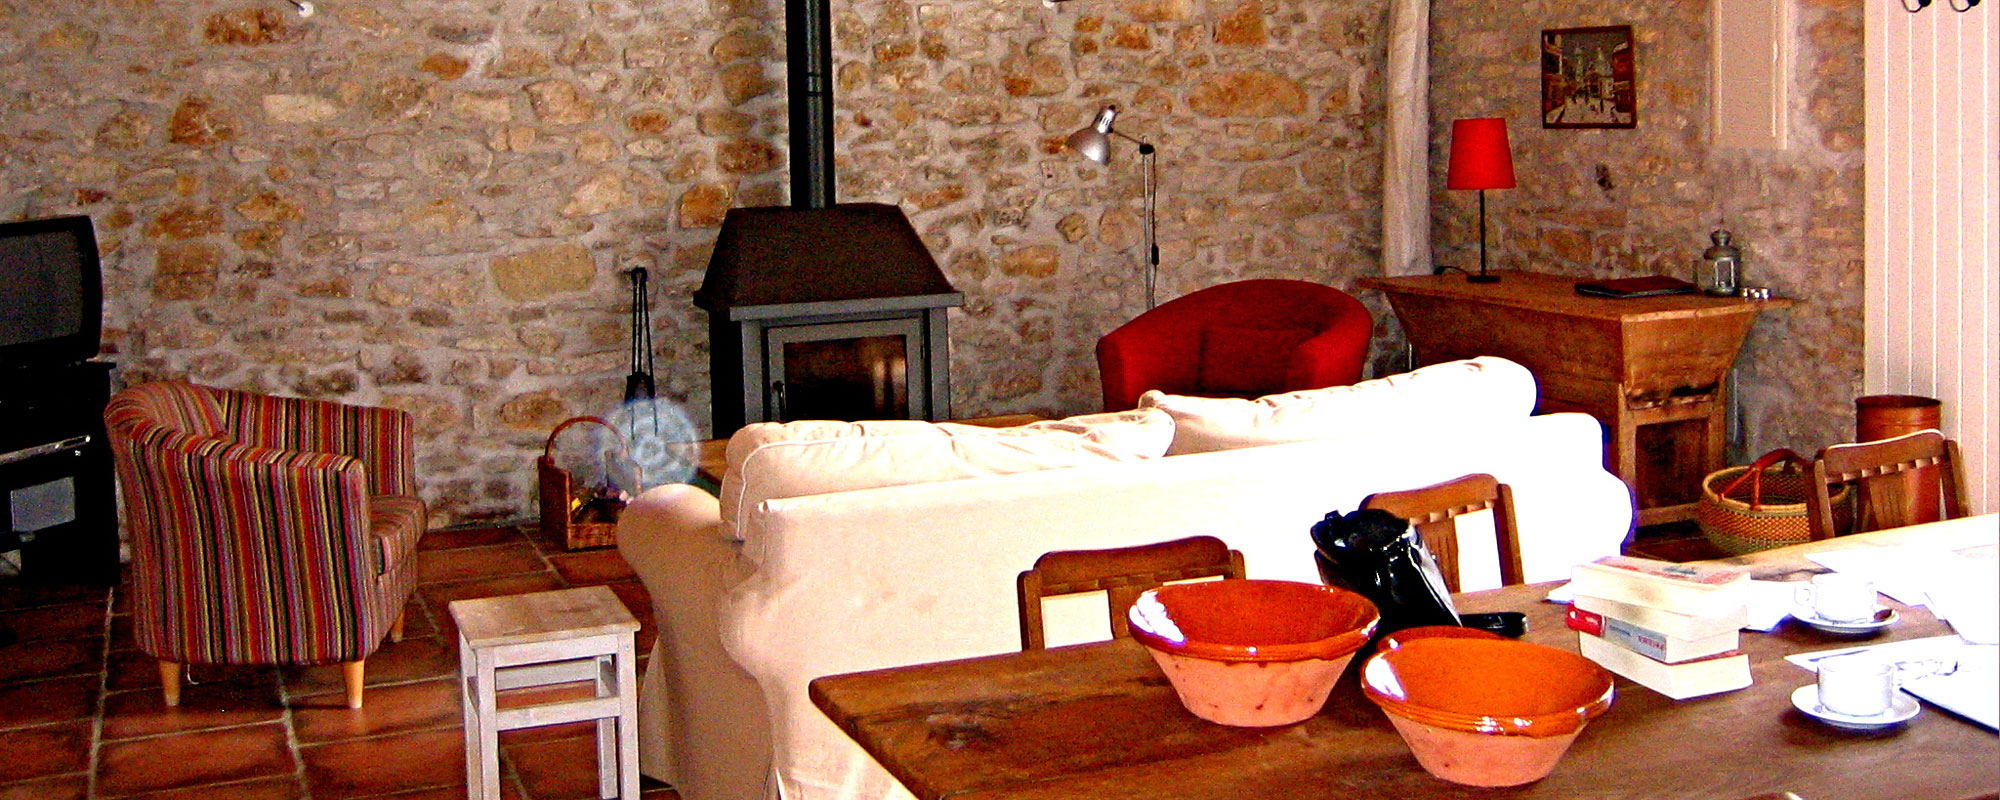 Self catering accommodation is French farmhouse style.